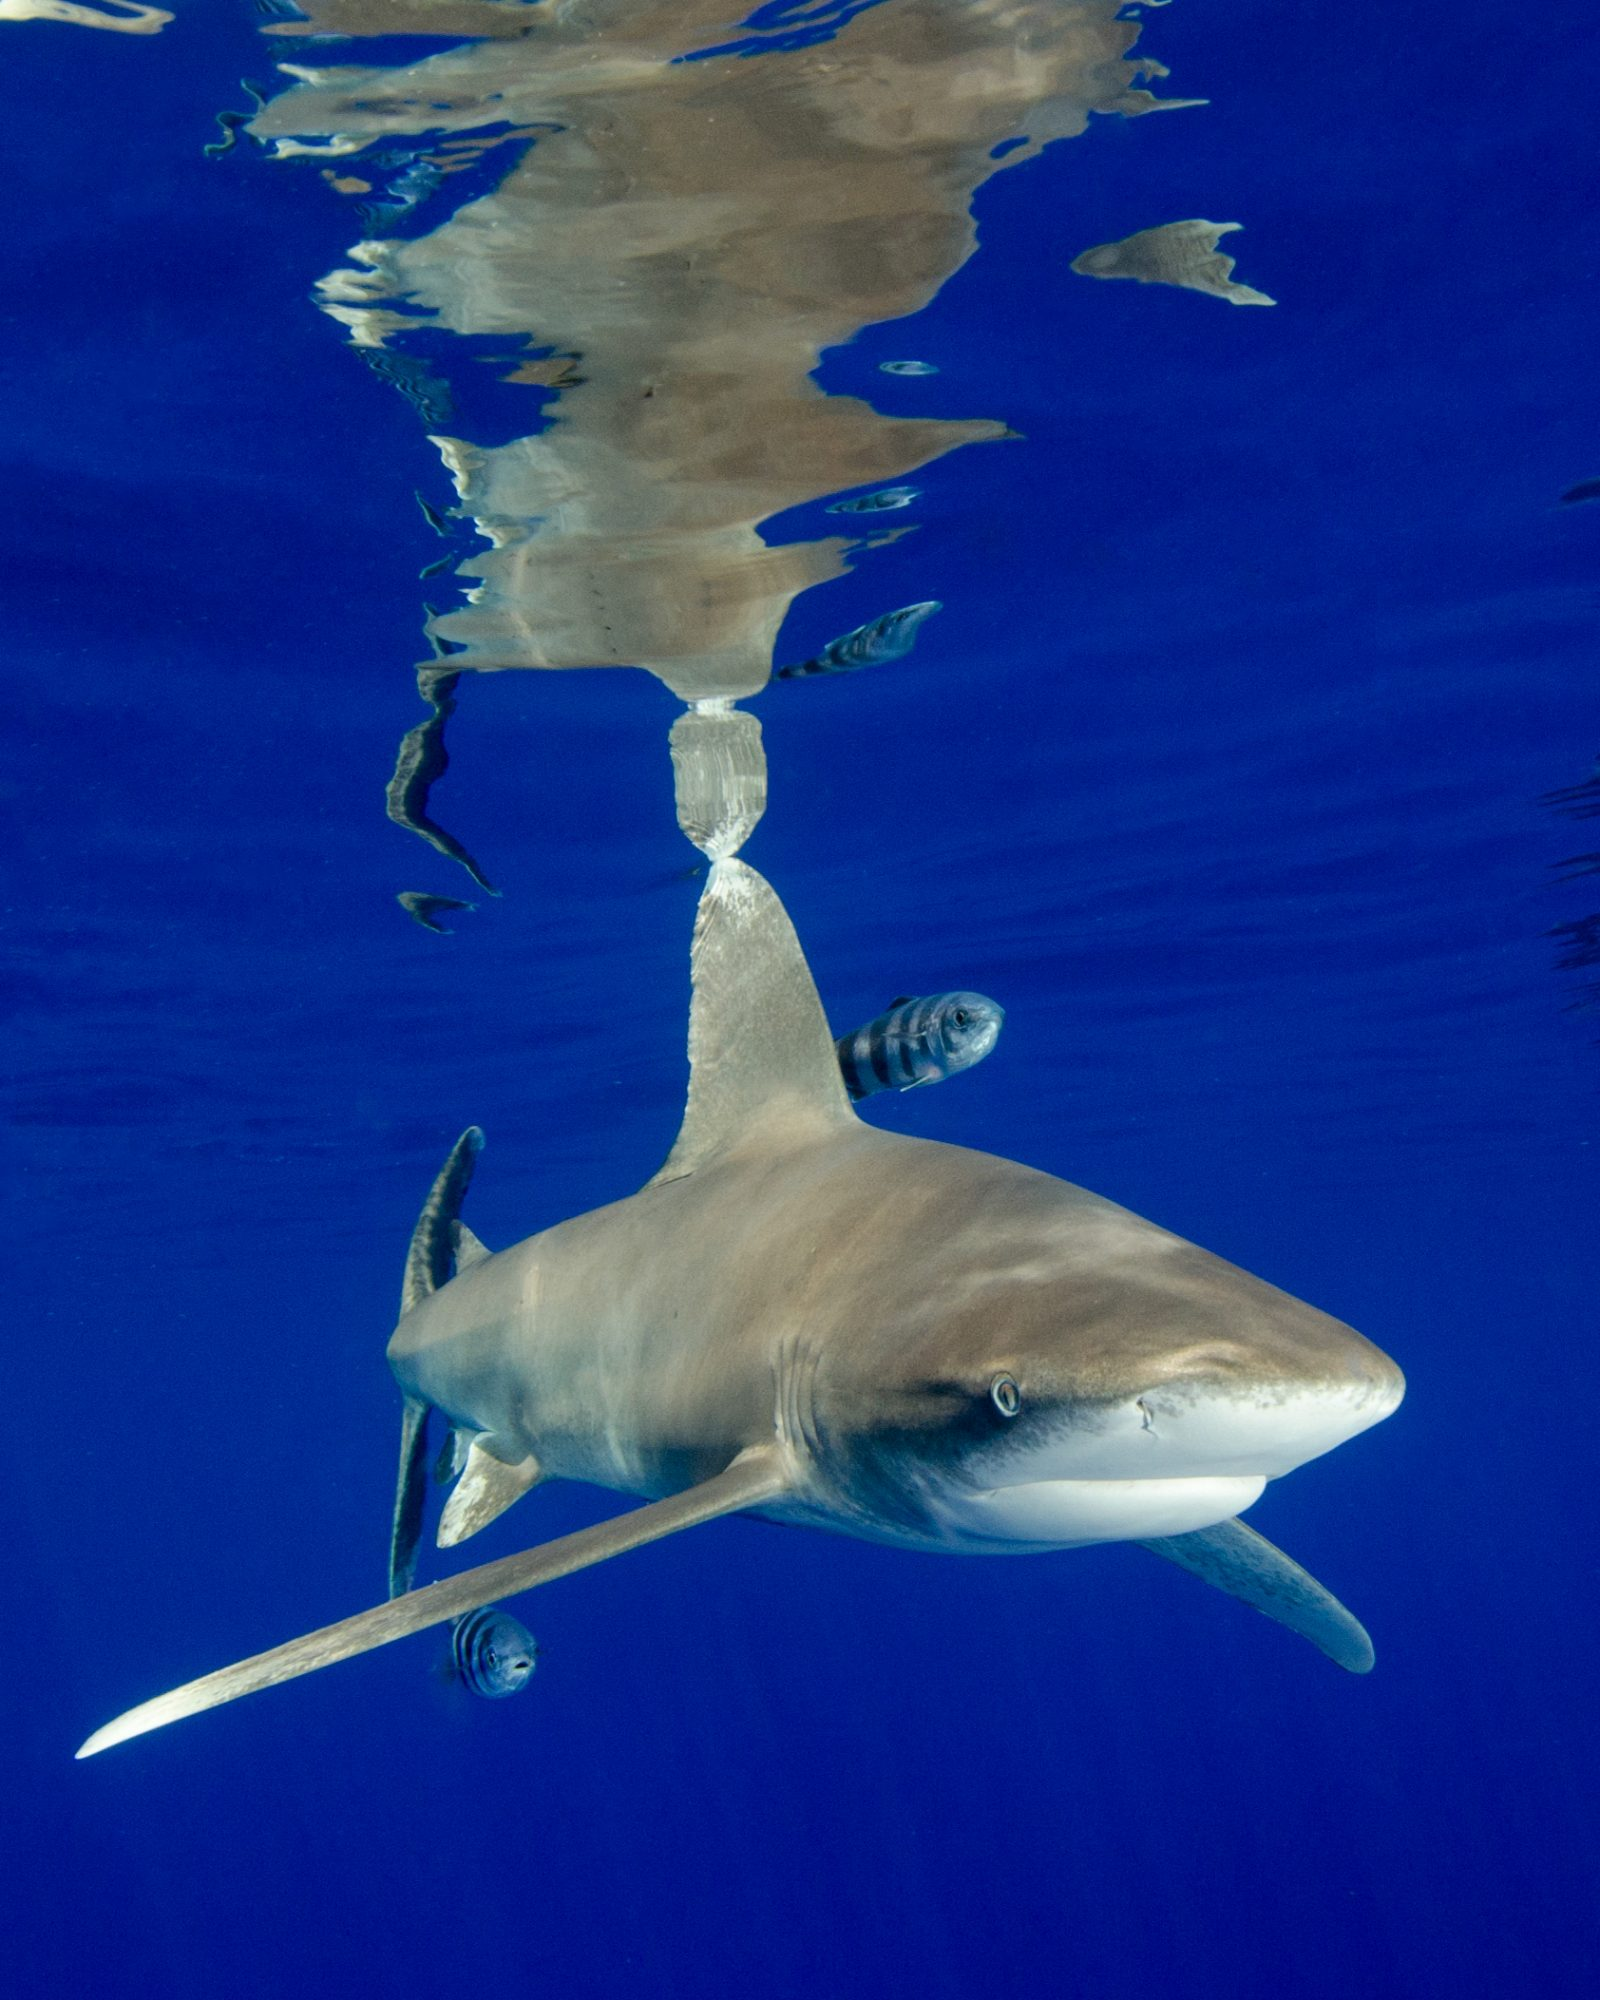 Oceanic White Tip Shark and Surface Reflections